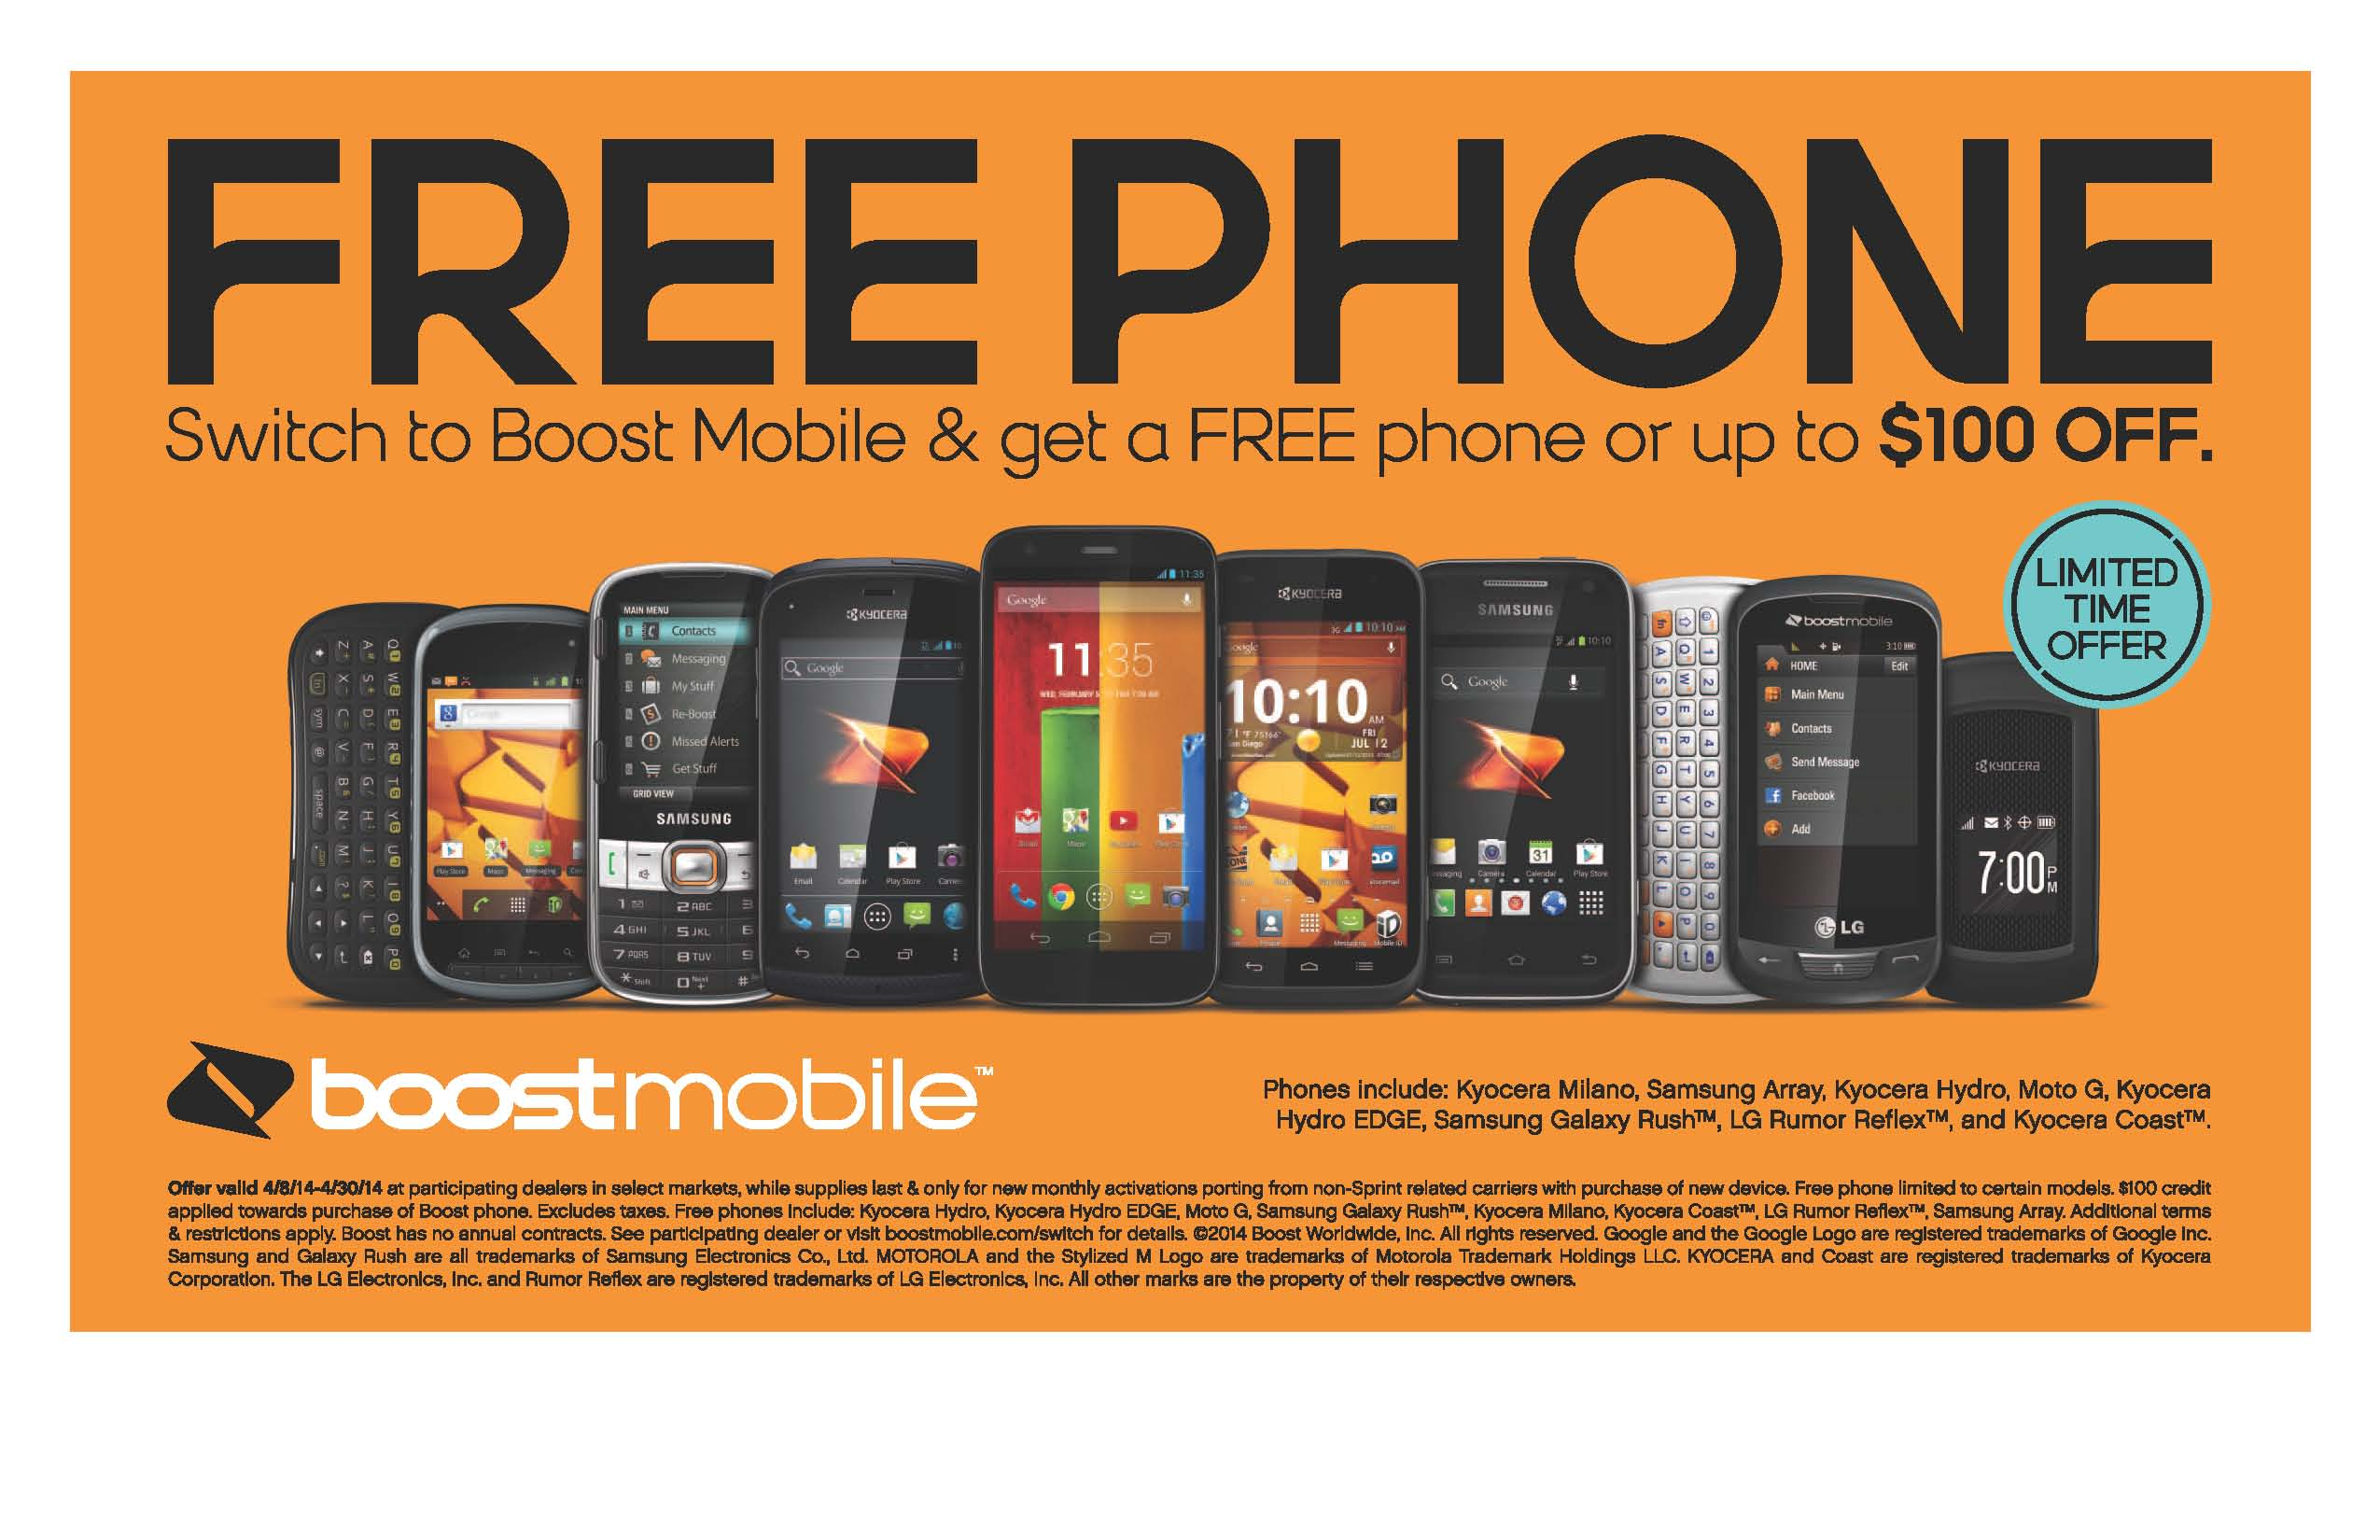 Find the latest cell phone deals available today from Boost Mobile. Get instant savings, account credit, or free gifts with a purchase online.